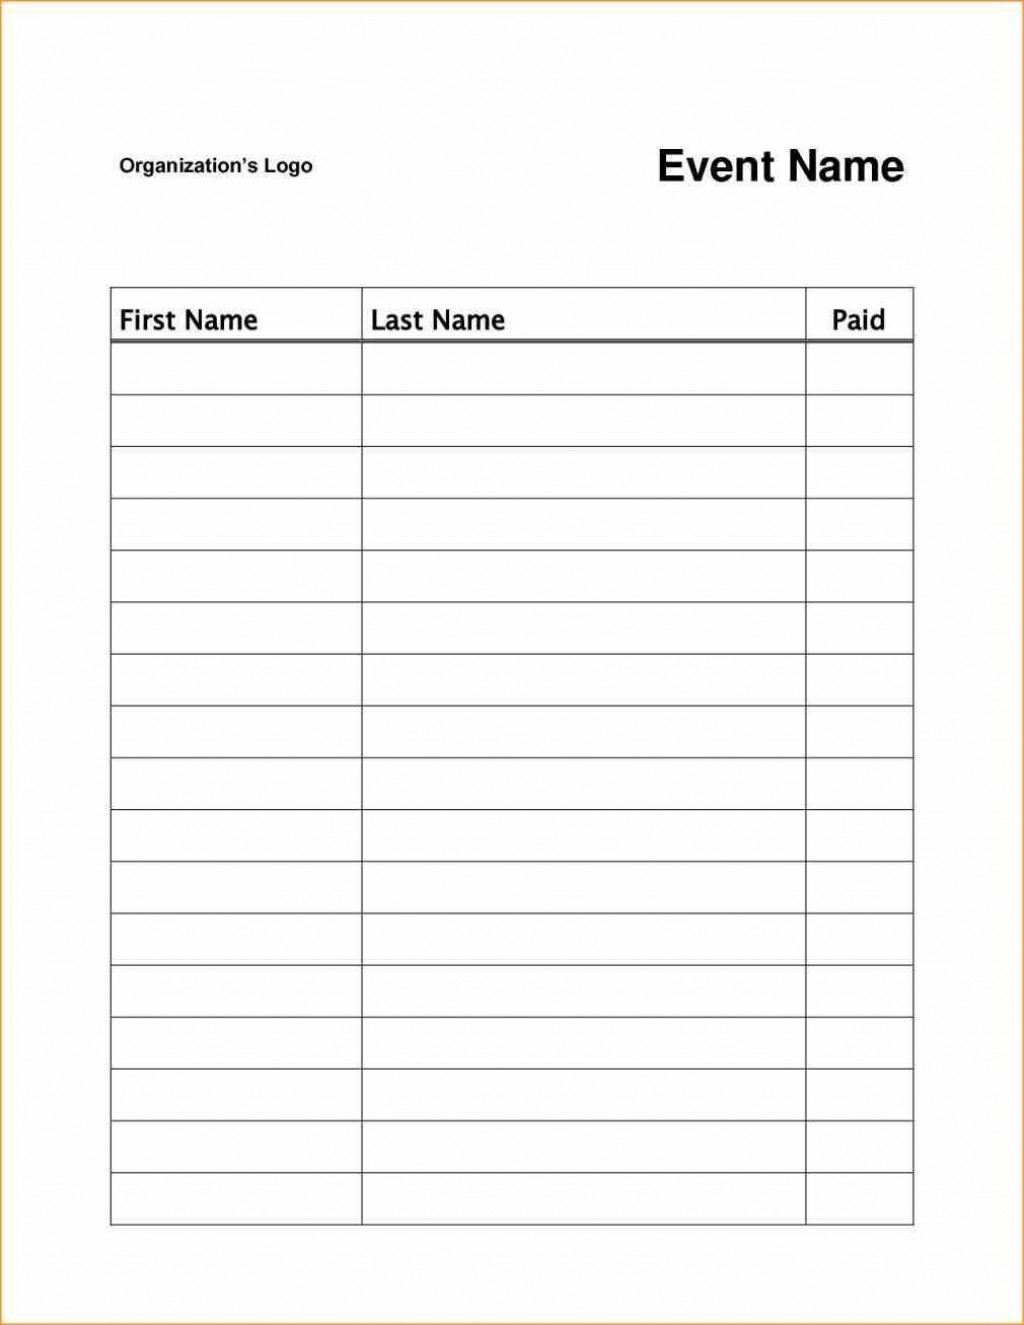 003 Magnificent Sign Up Sheet Template High Resolution  Volunteer In Word WorkLarge